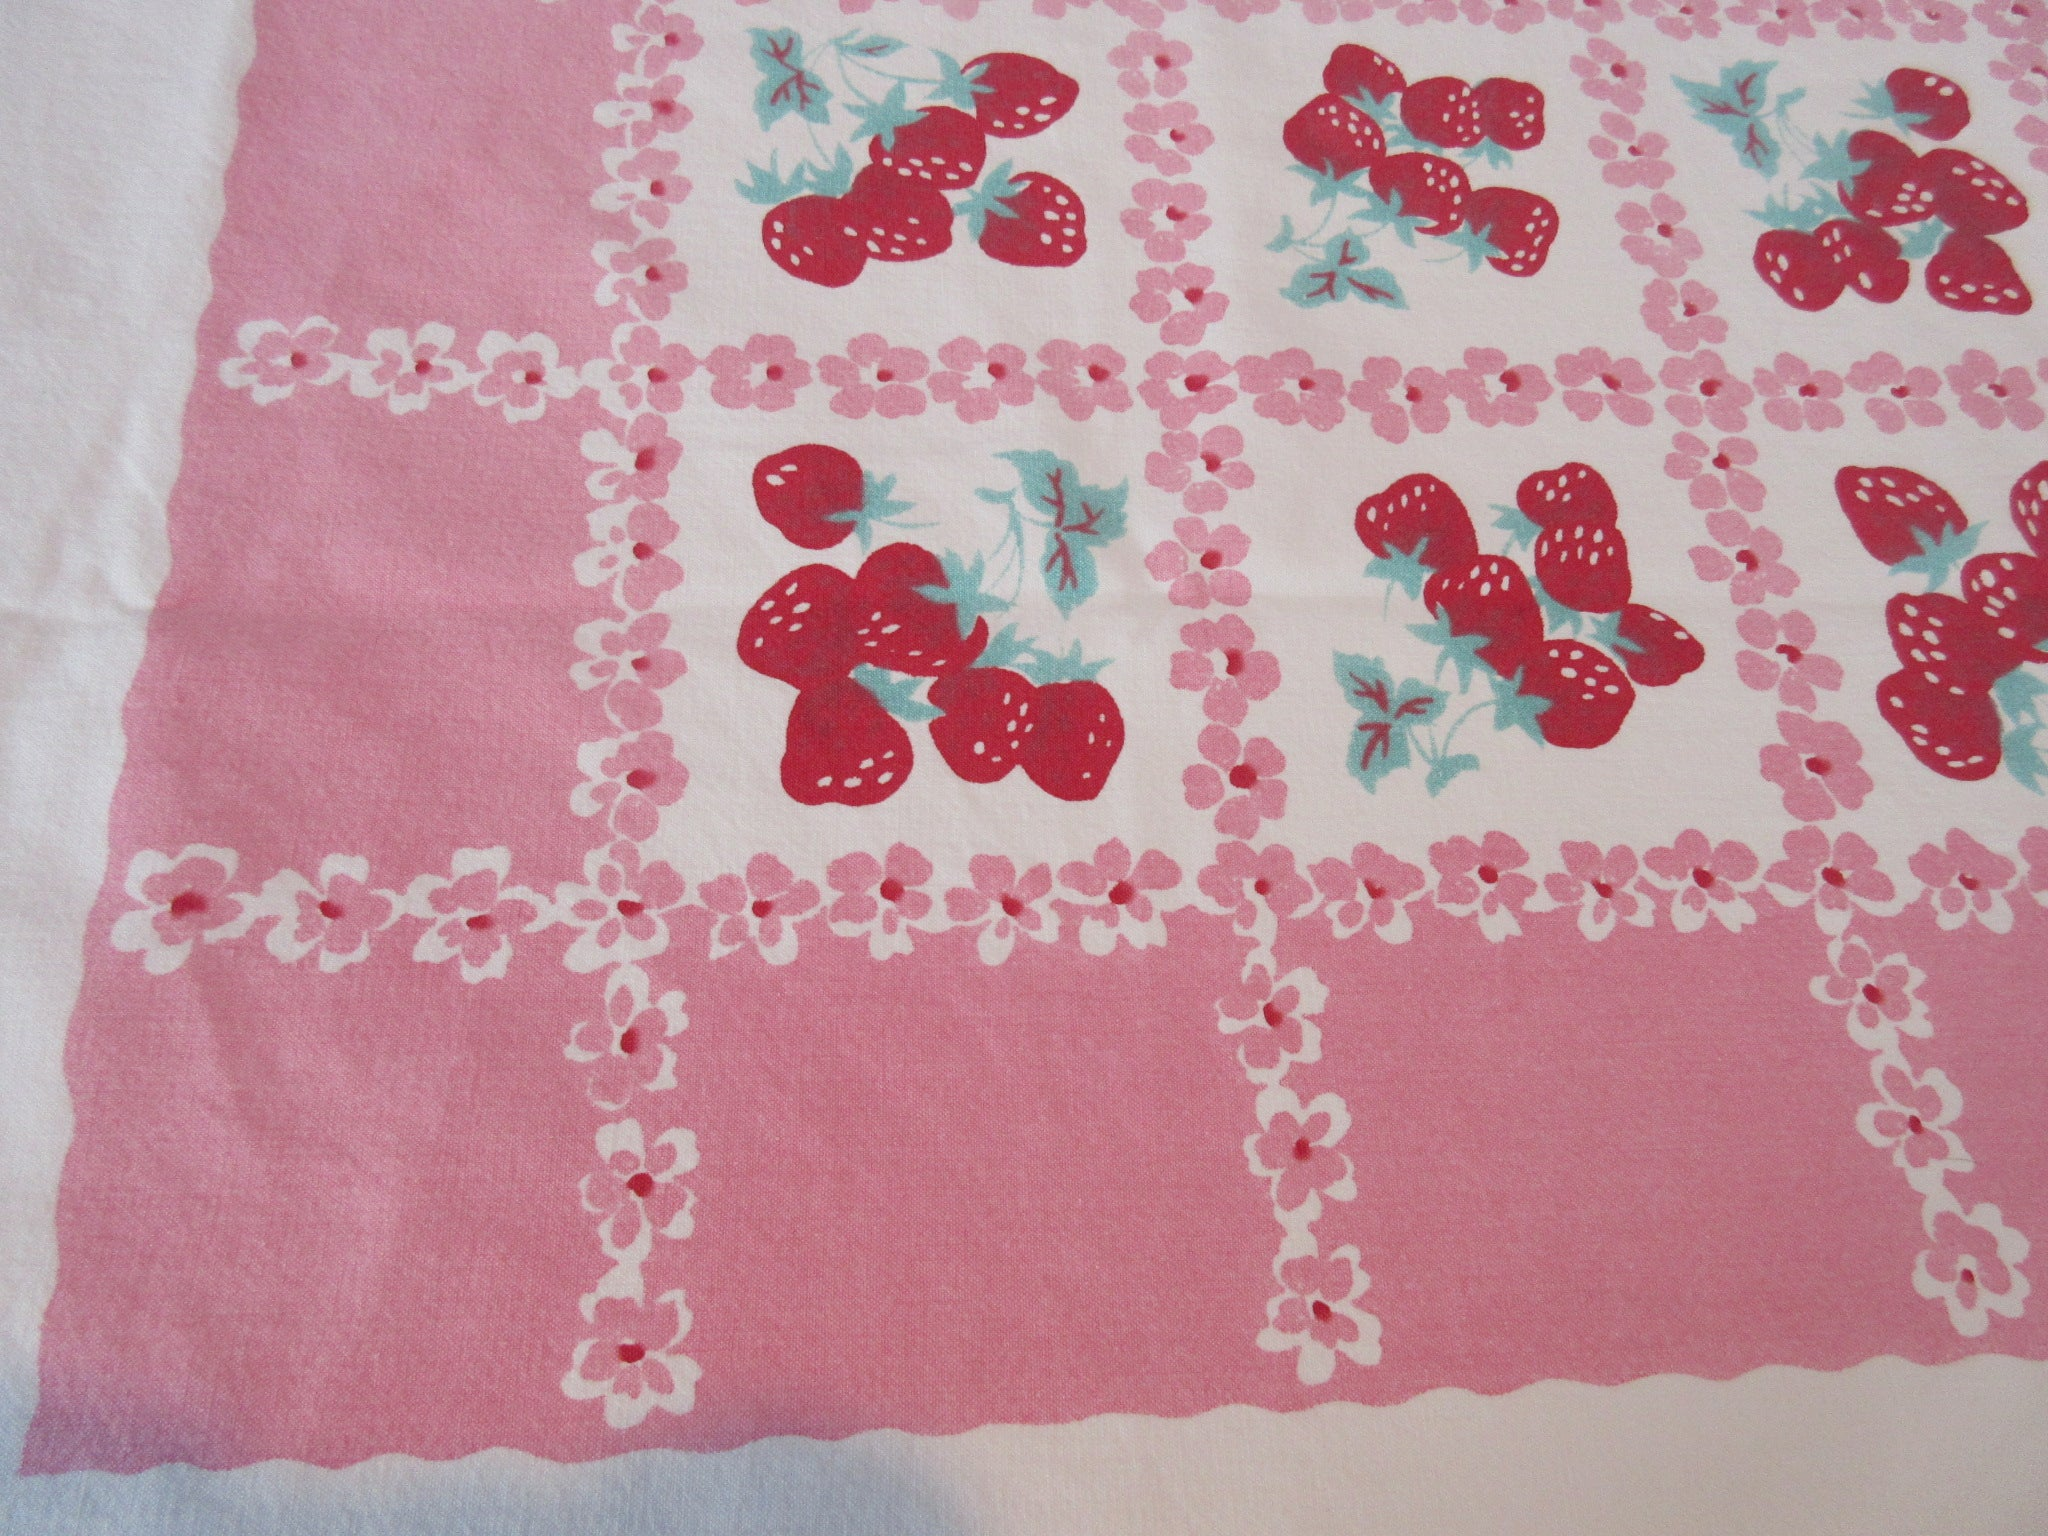 Larger Heavy Strawberry Grid on Pink Fruit Vintage Printed Tablecloth (80 X 56)